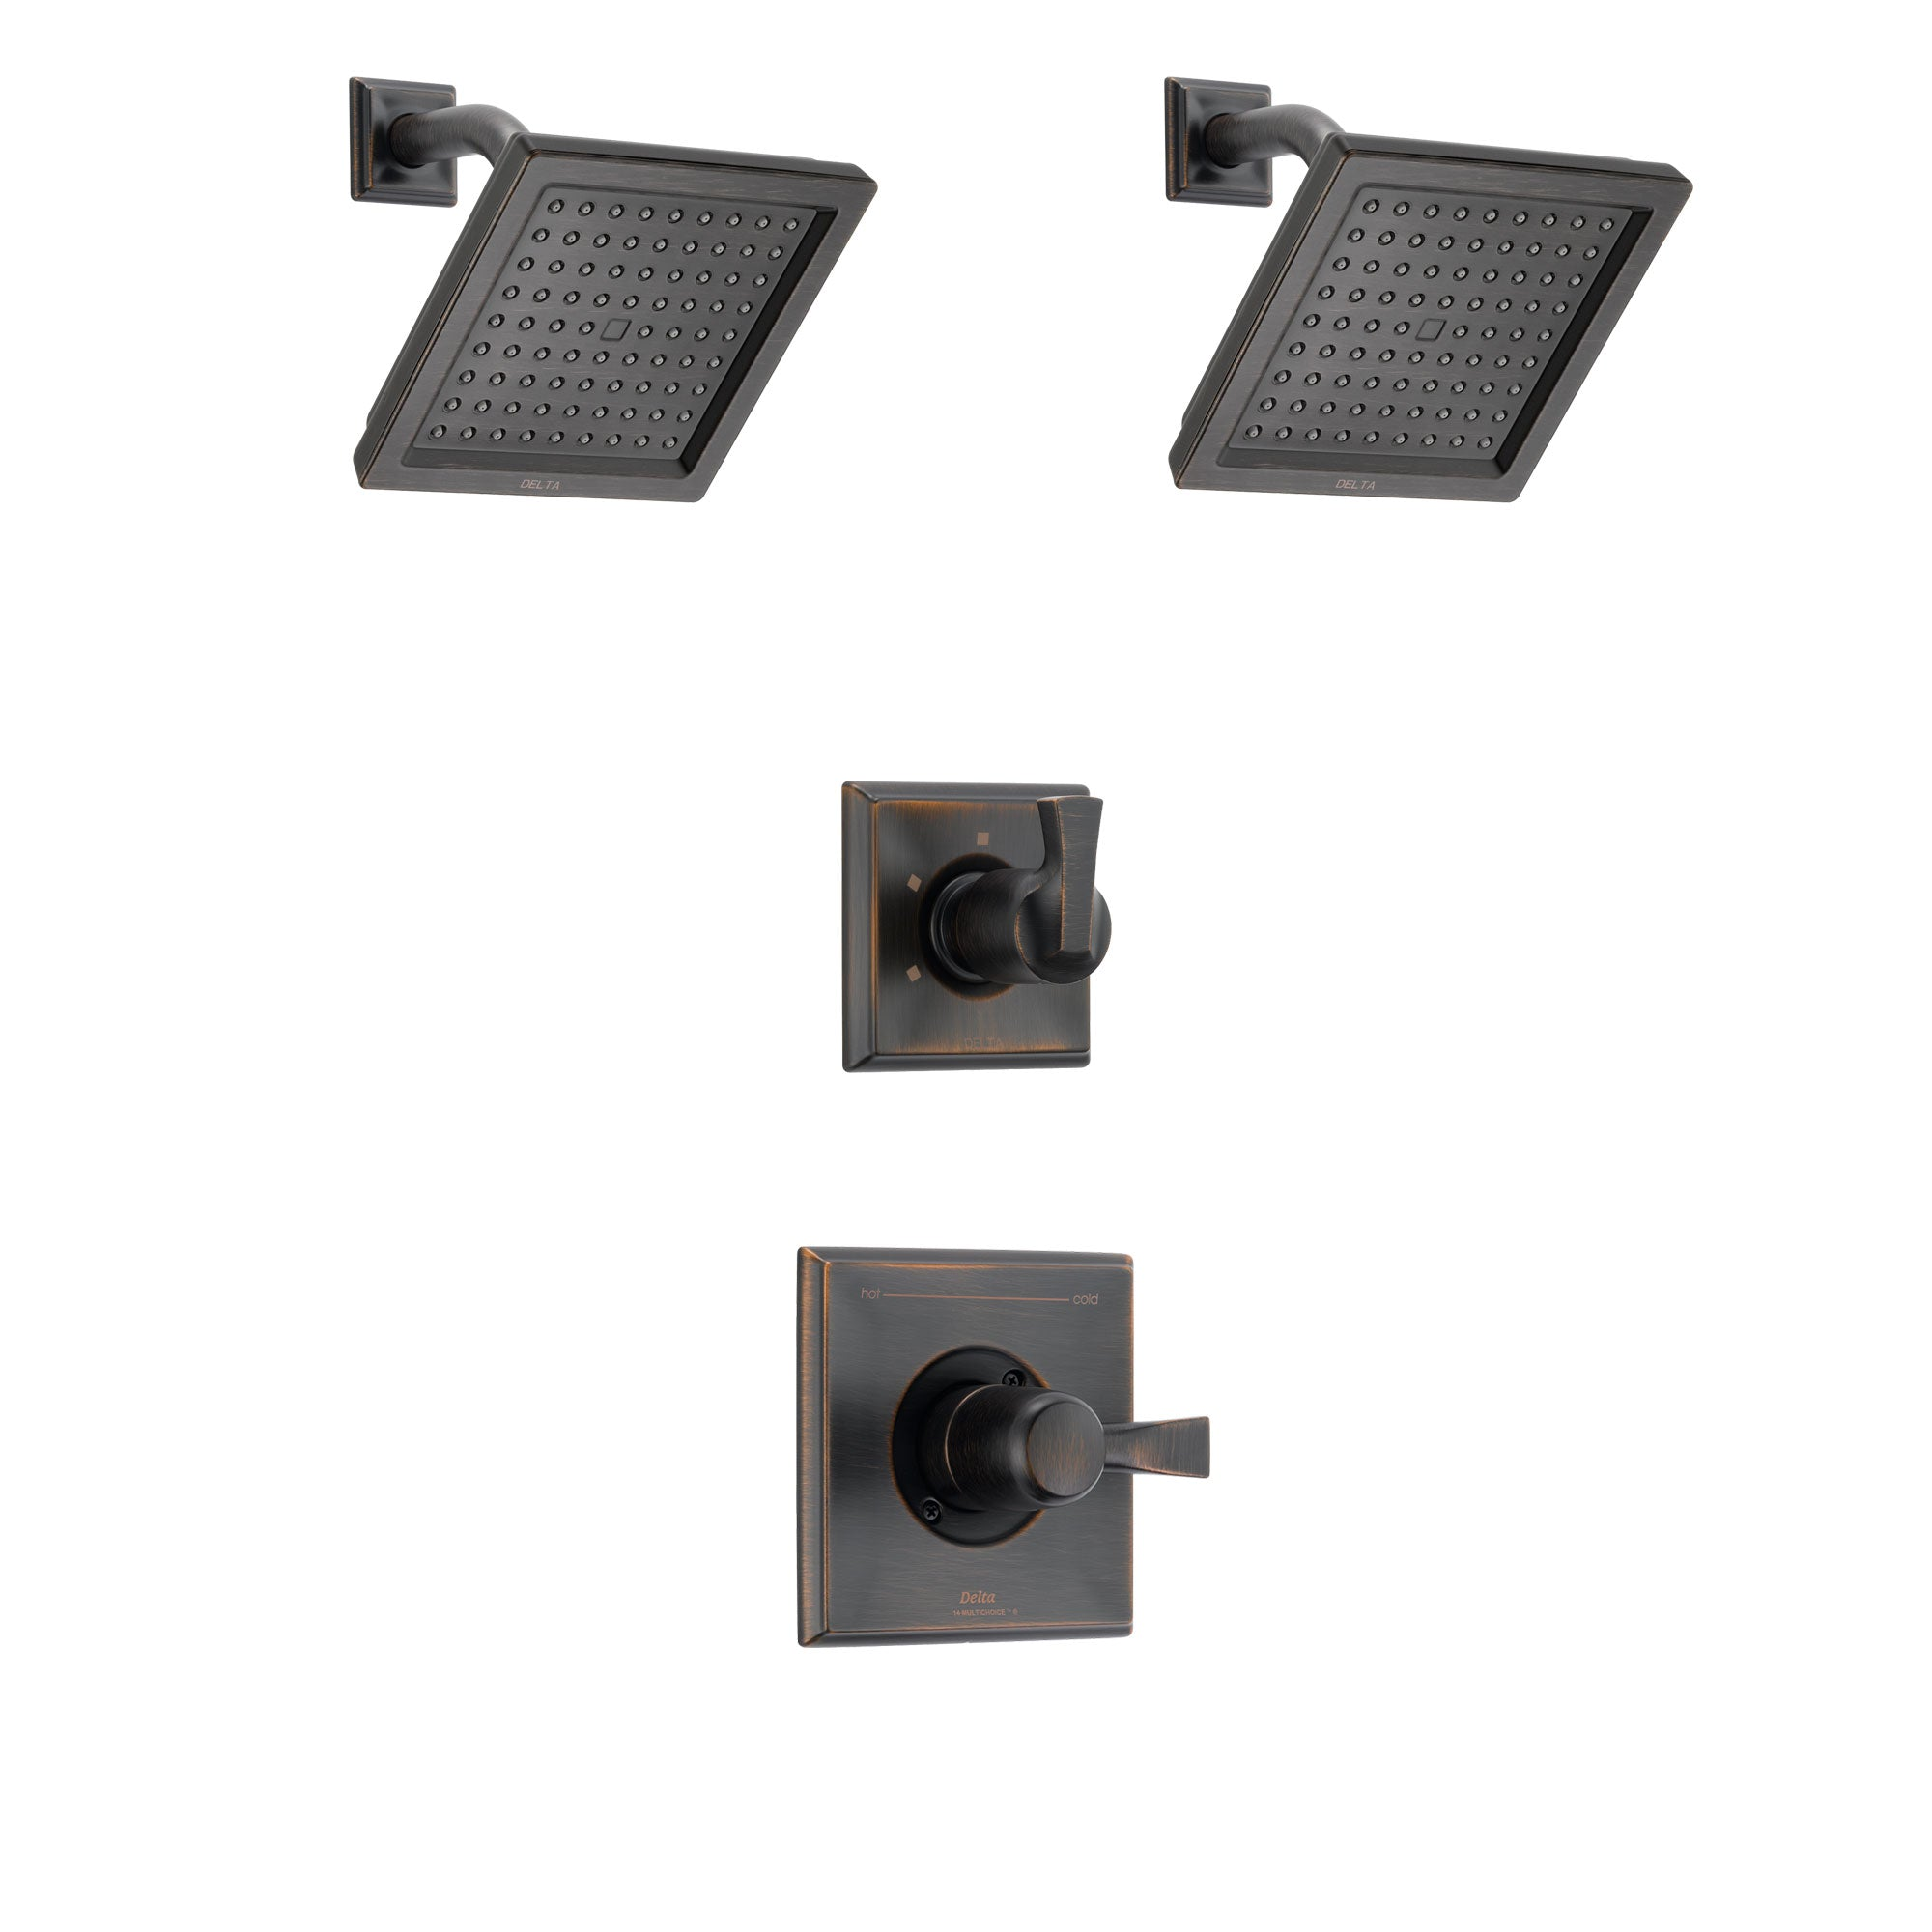 Delta Dryden Venetian Bronze Finish Shower System with Control Handle, 3-Setting Diverter, 2 Showerheads SS142511RB6